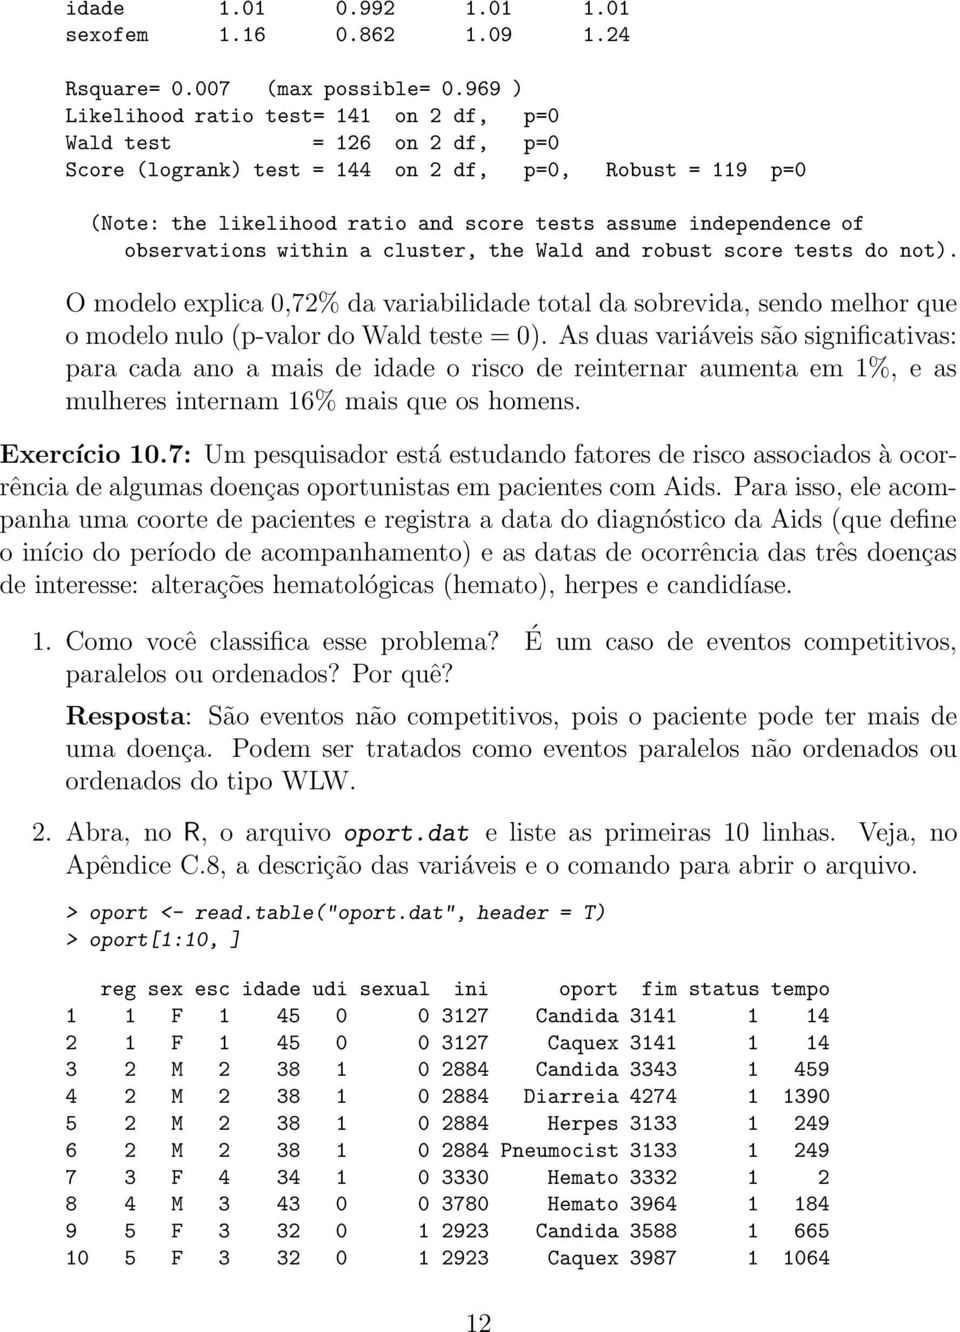 observations within a cluster, the Wald and robust score tests do not). O modelo explica 0,72% da variabilidade total da sobrevida, sendo melhor que o modelo nulo (p-valor do Wald teste = 0).